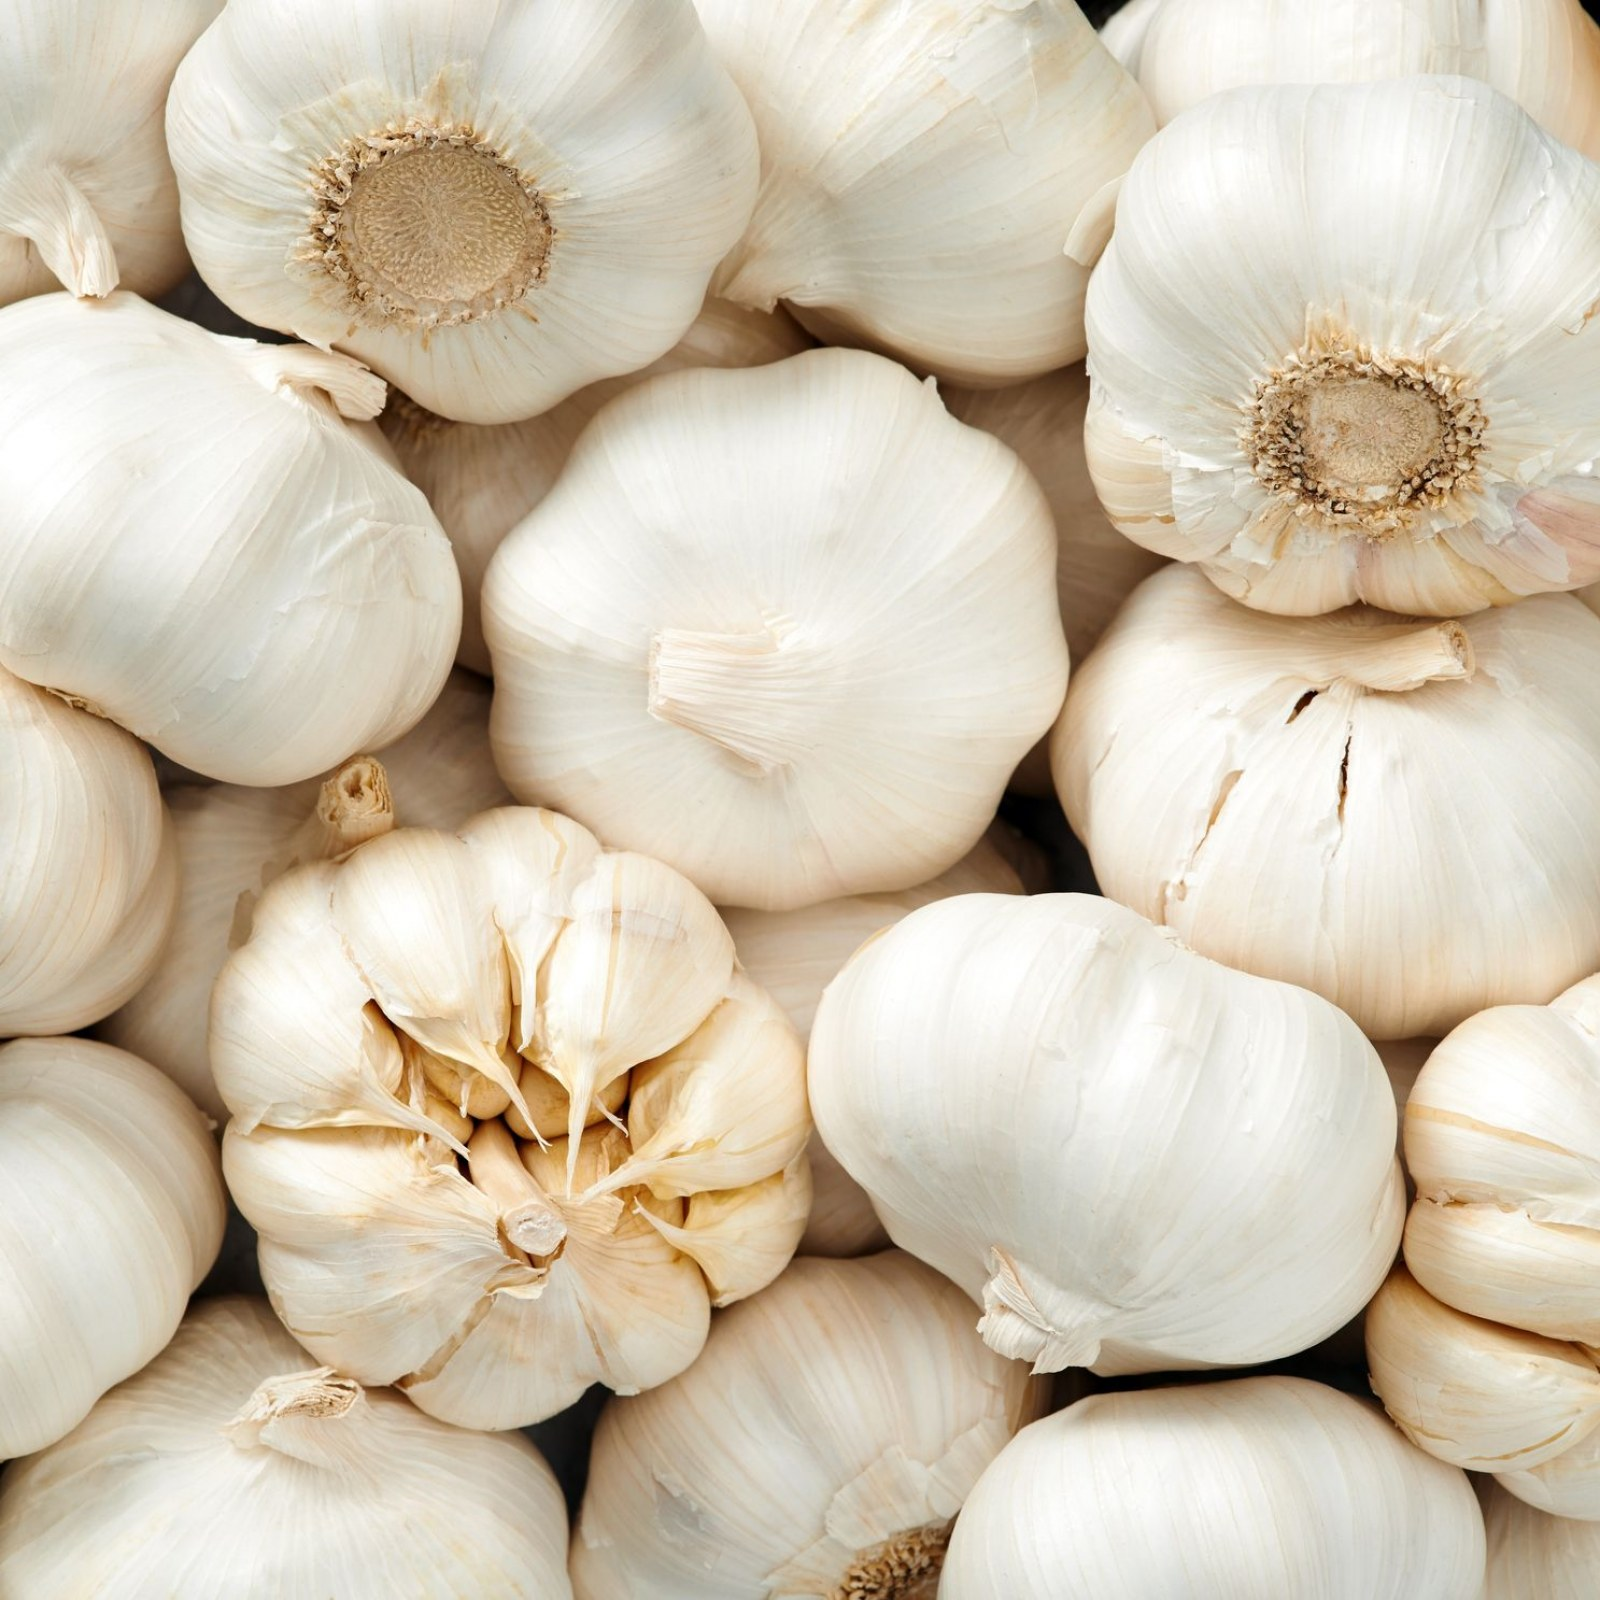 Garlic Burned Through Woman S Toe In Athlete S Foot Home Remedy